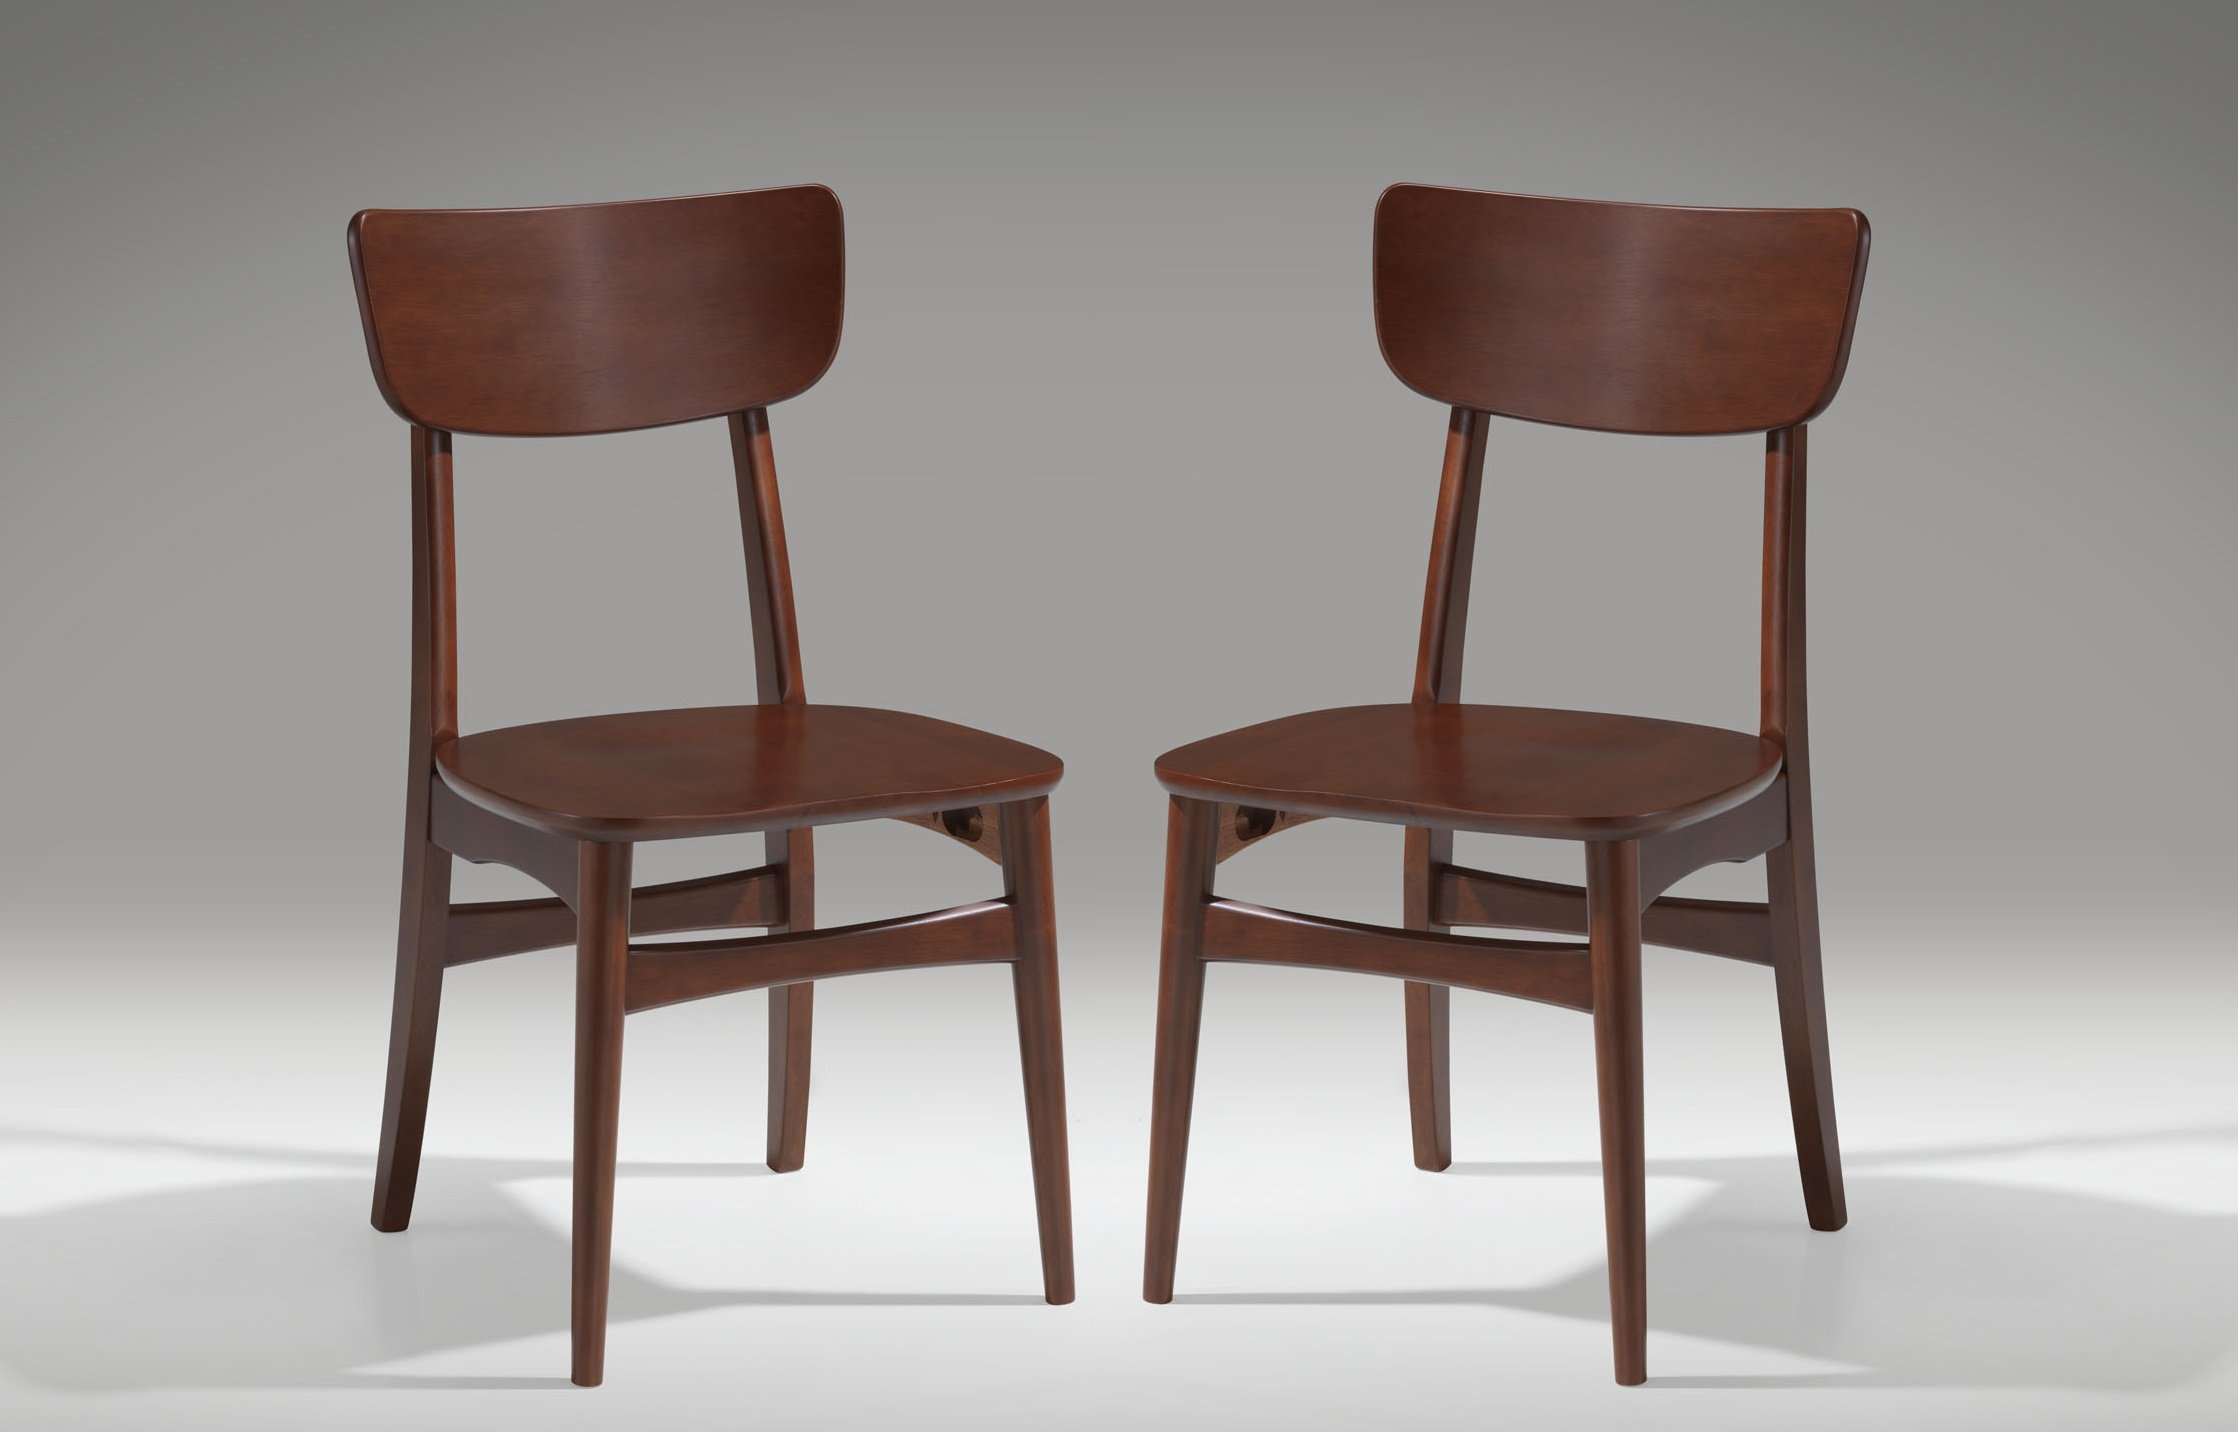 Baxton Studio Set of 2 Netherlands Mid-Century Modern Scandinavian Style Dark Walnut Bentwood Dining Side Chairs - 2-piece mid-century modern dining chair set Materials: Solid rubber wood and MDF with brown wood veneer Rich walnut-veneer finish - kitchen-dining-room-furniture, kitchen-dining-room, kitchen-dining-room-chairs - 711xFMd0gTL -